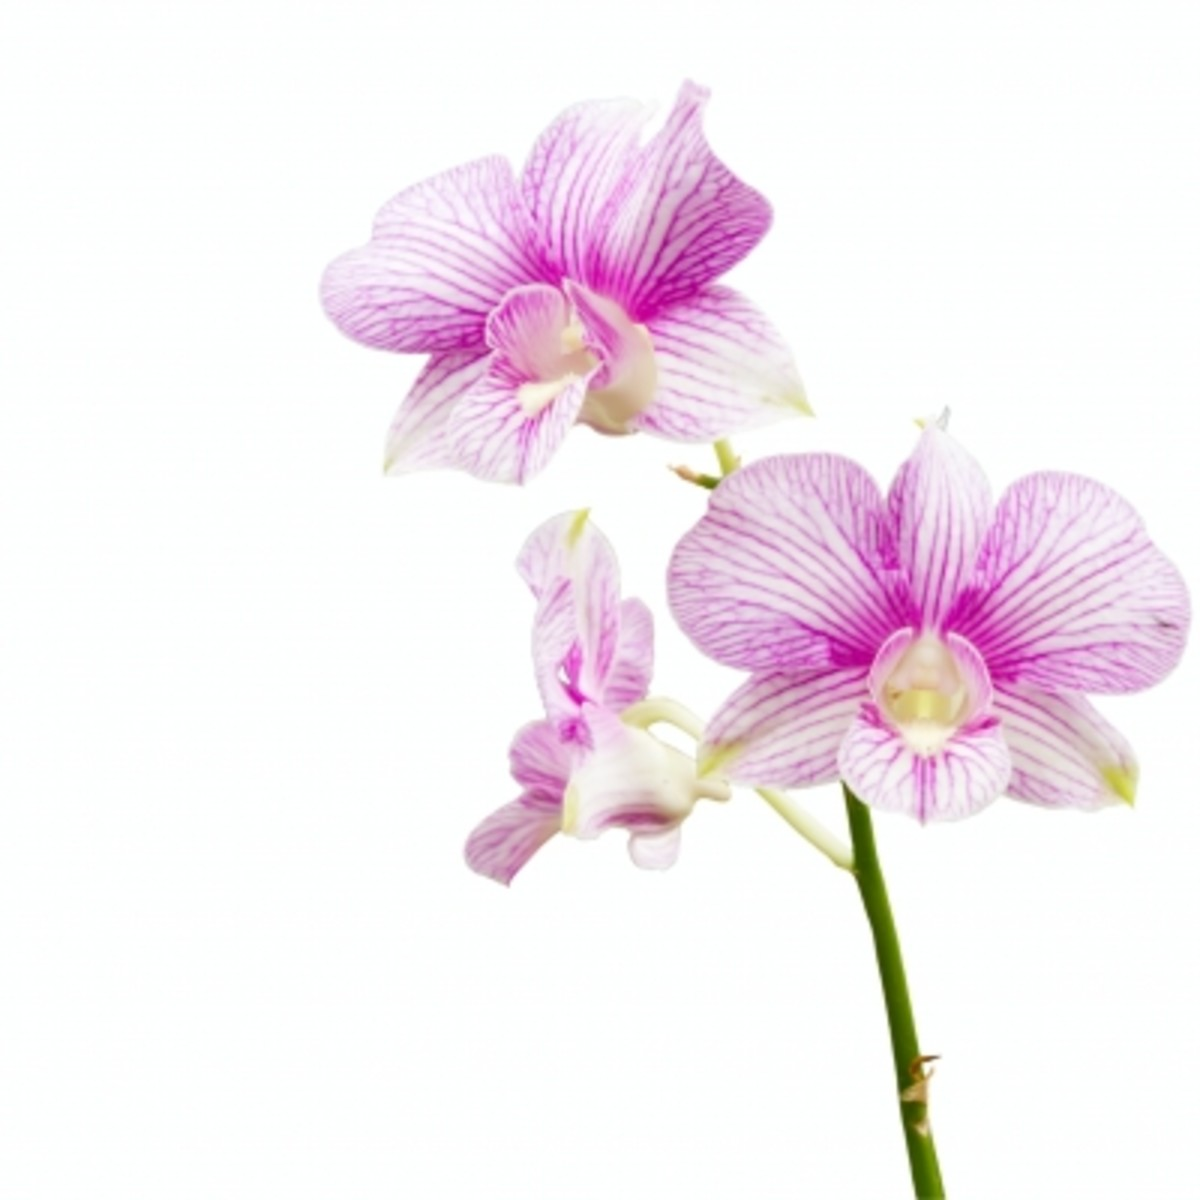 Growing orchids isn't that difficult, as long as you get the correct ratio of water and light.